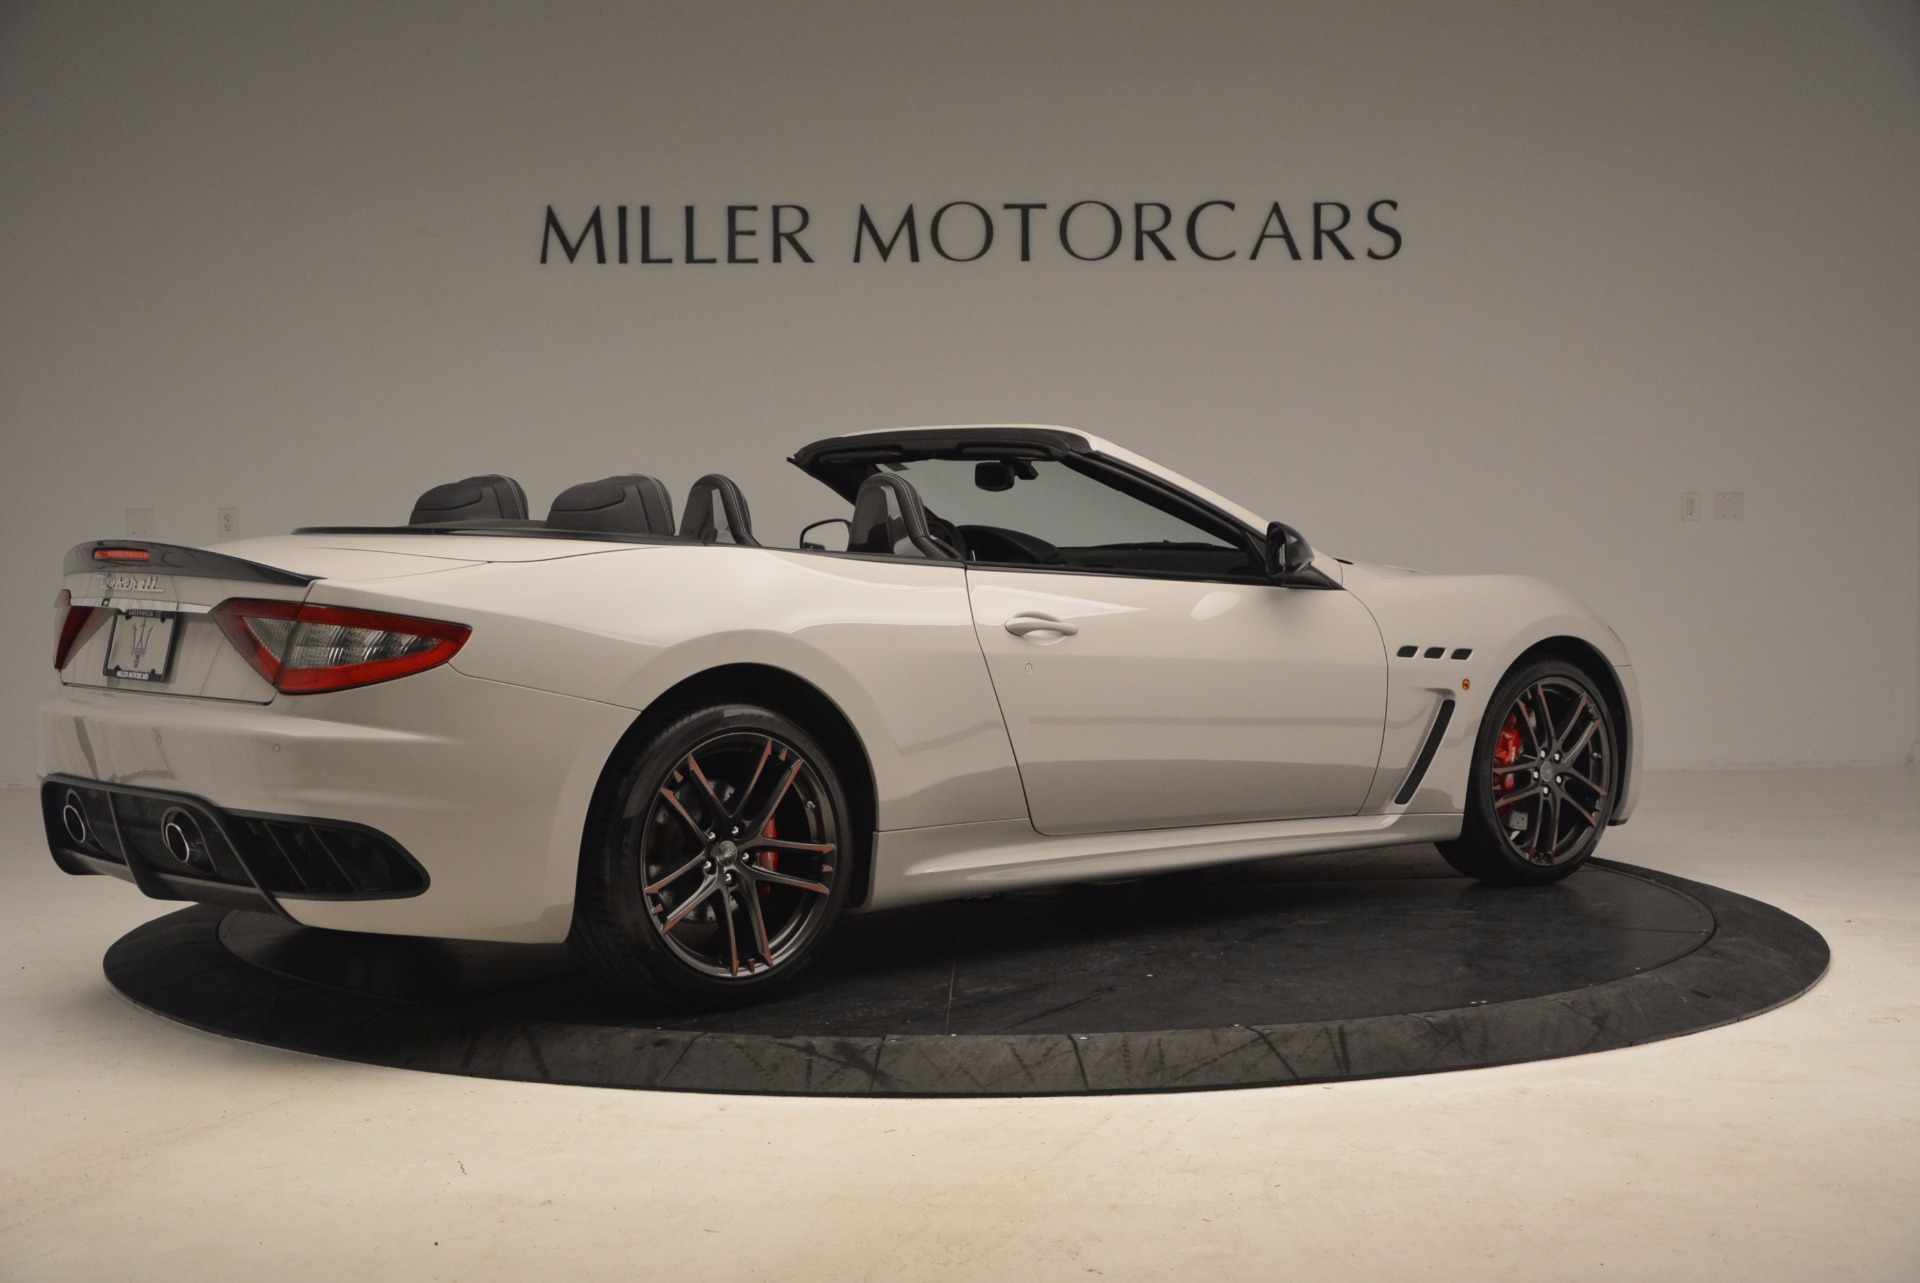 Used 2015 Maserati GranTurismo MC Centennial For Sale In Westport, CT 1107_p8